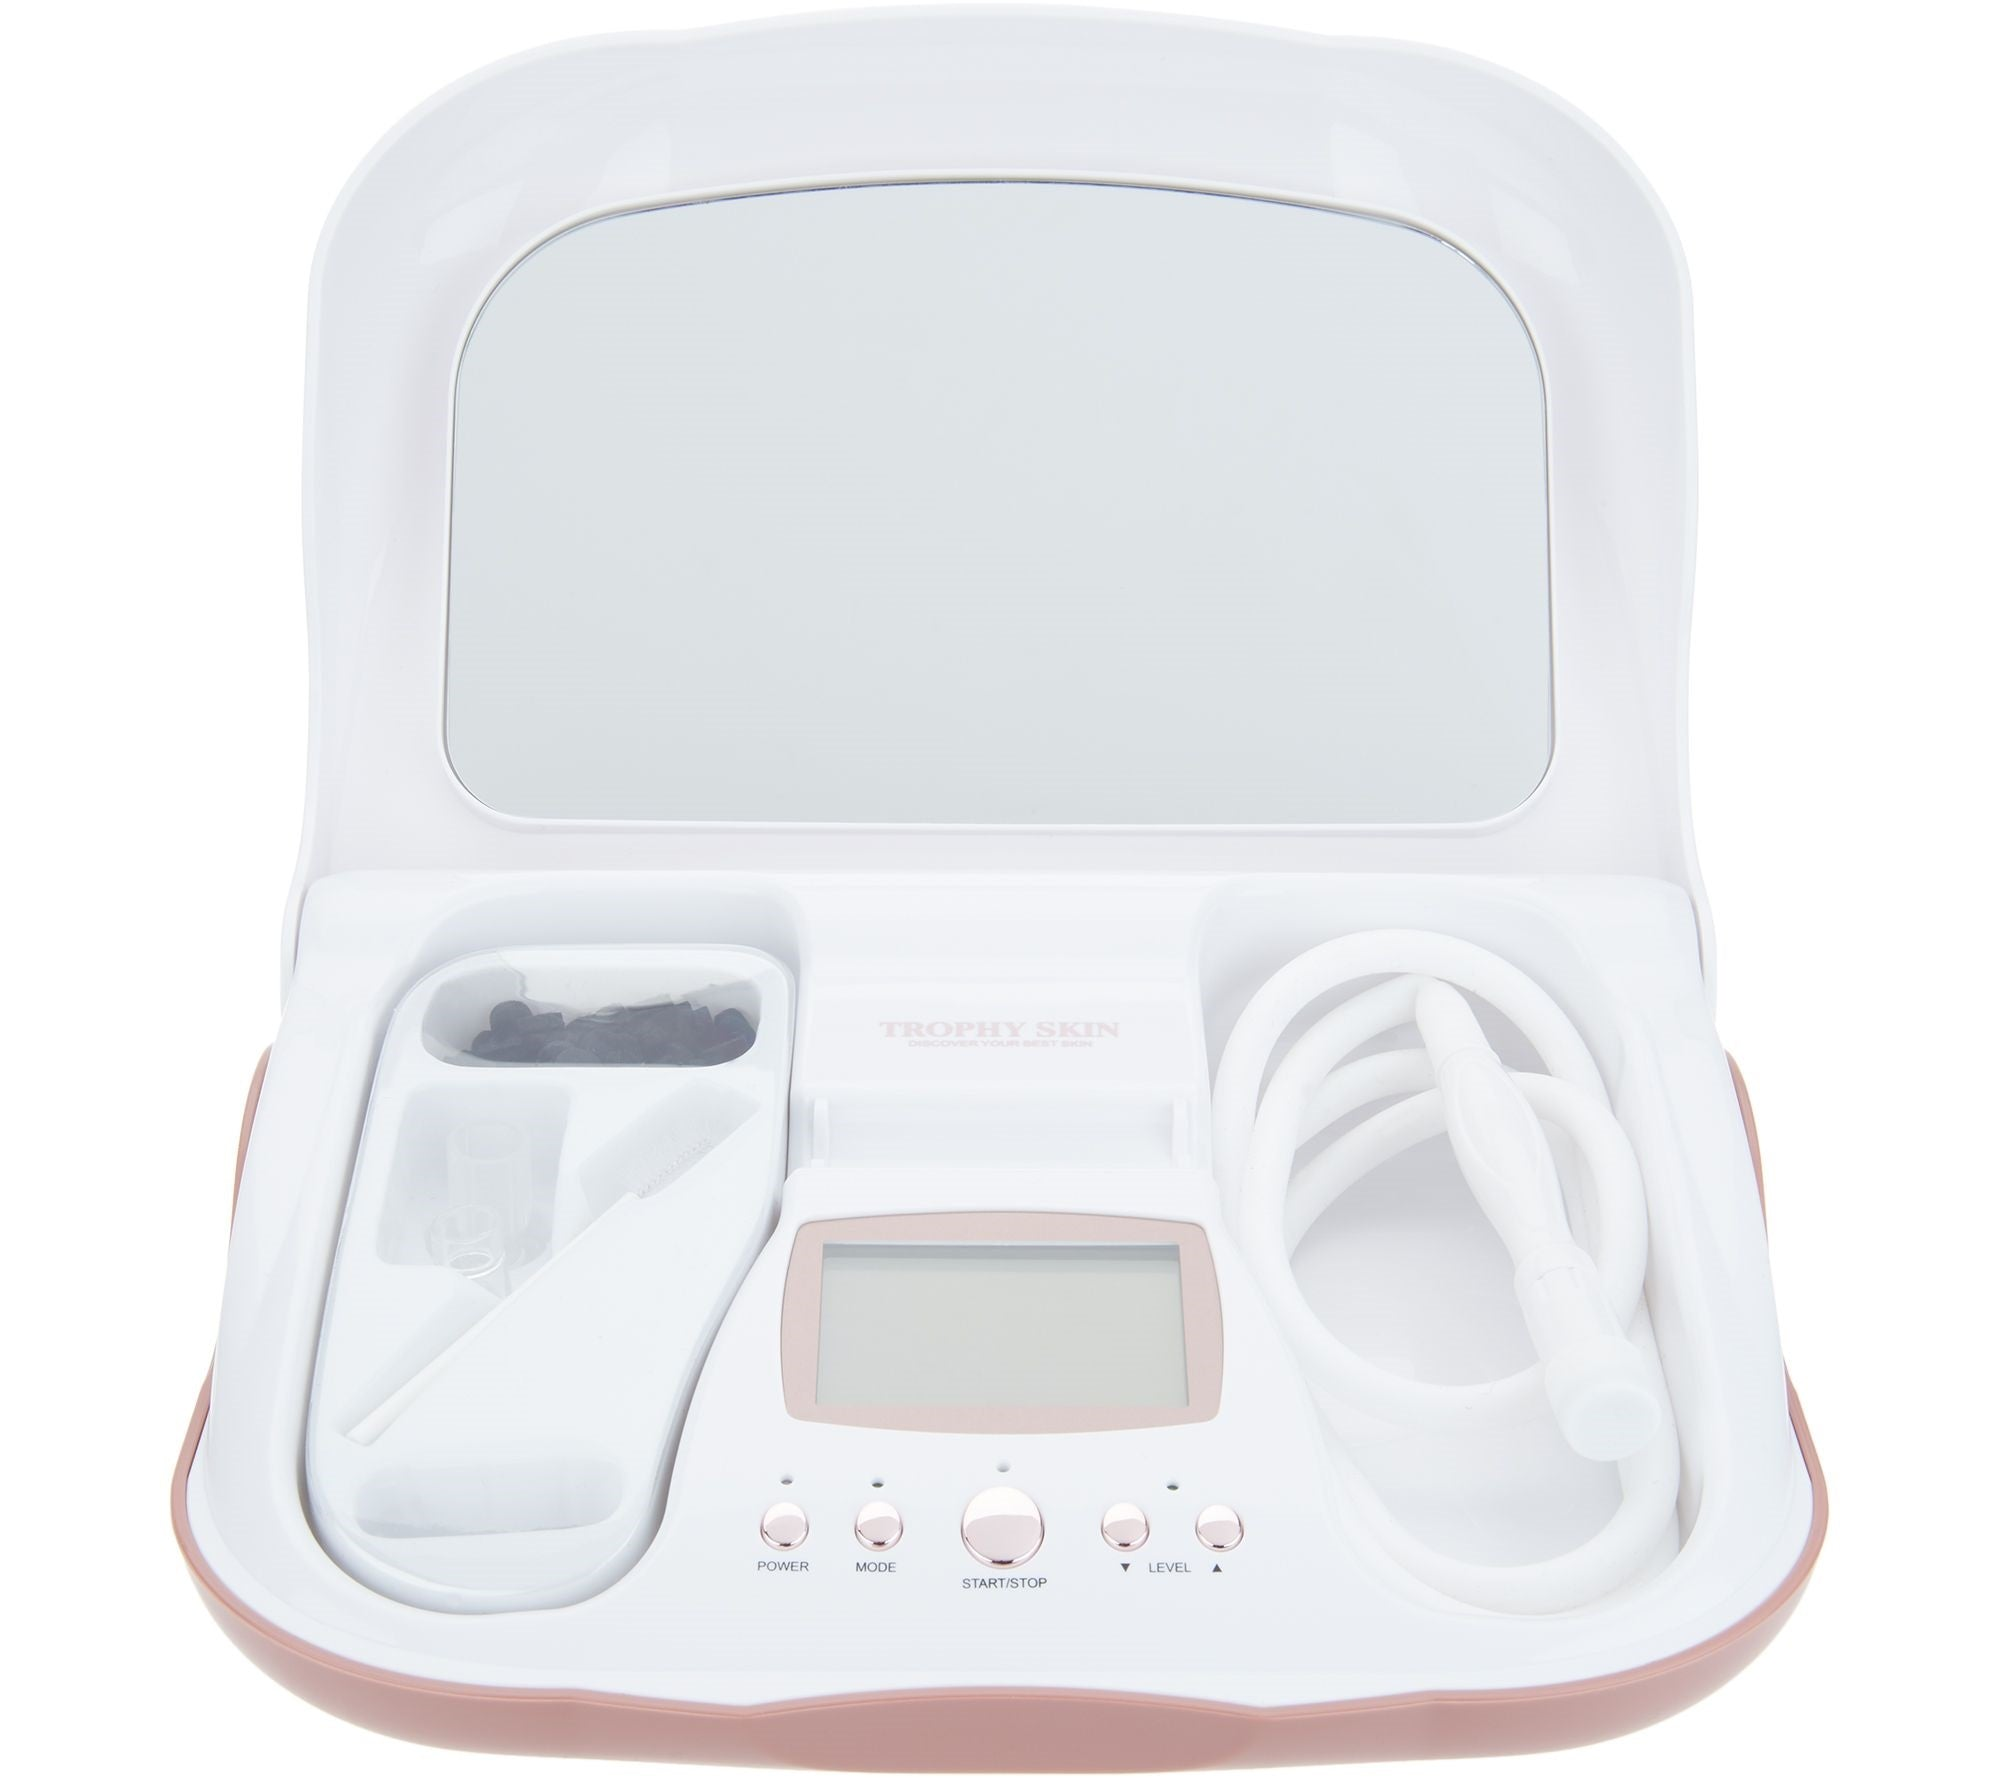 MicrodermMD Home Microdermabrasion System